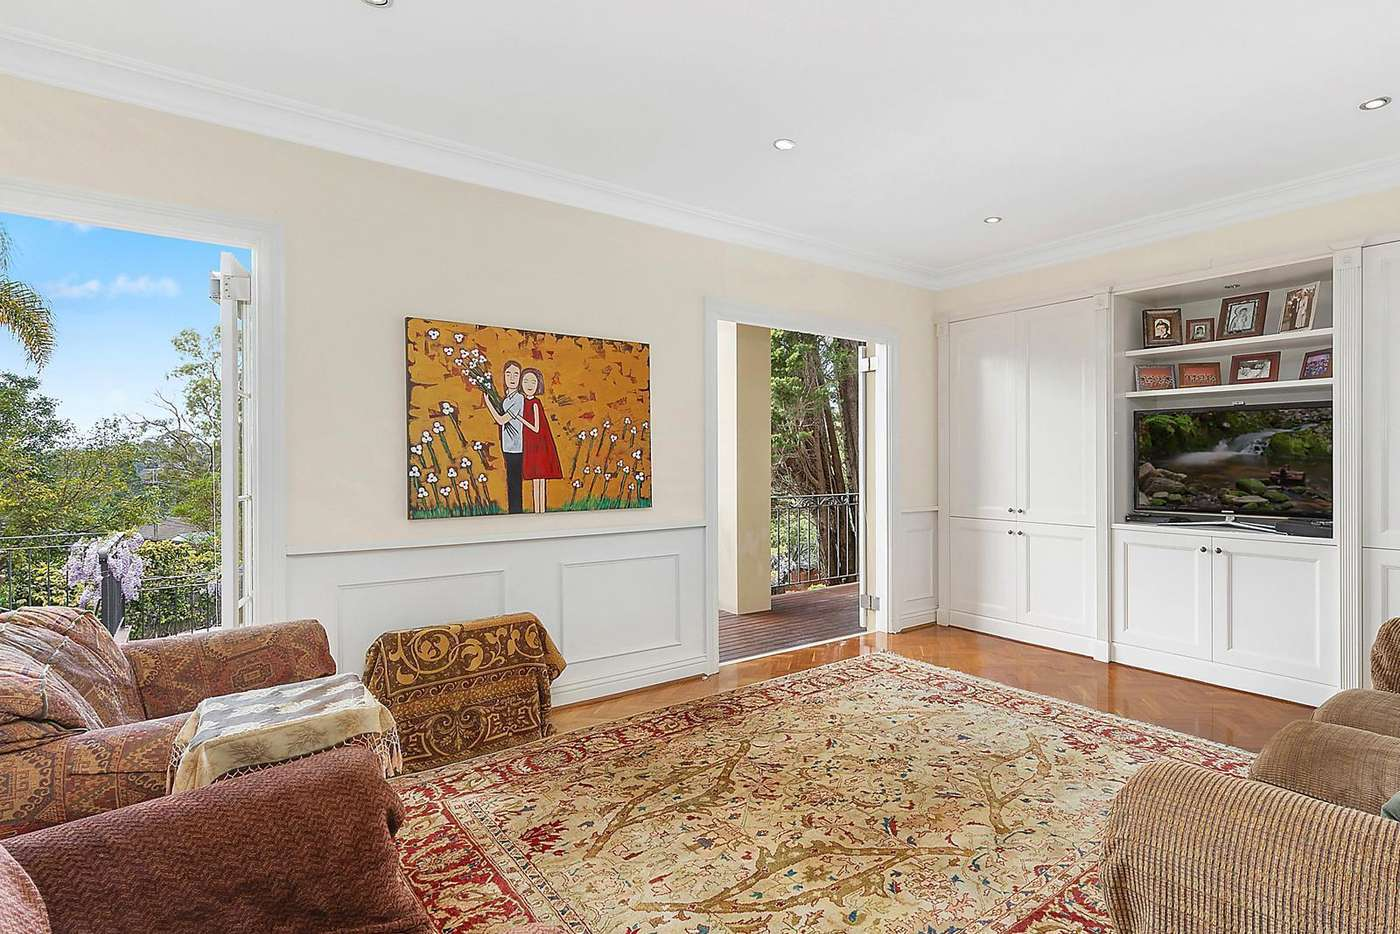 Seventh view of Homely house listing, 15 Burdekin Crescent, St Ives NSW 2075